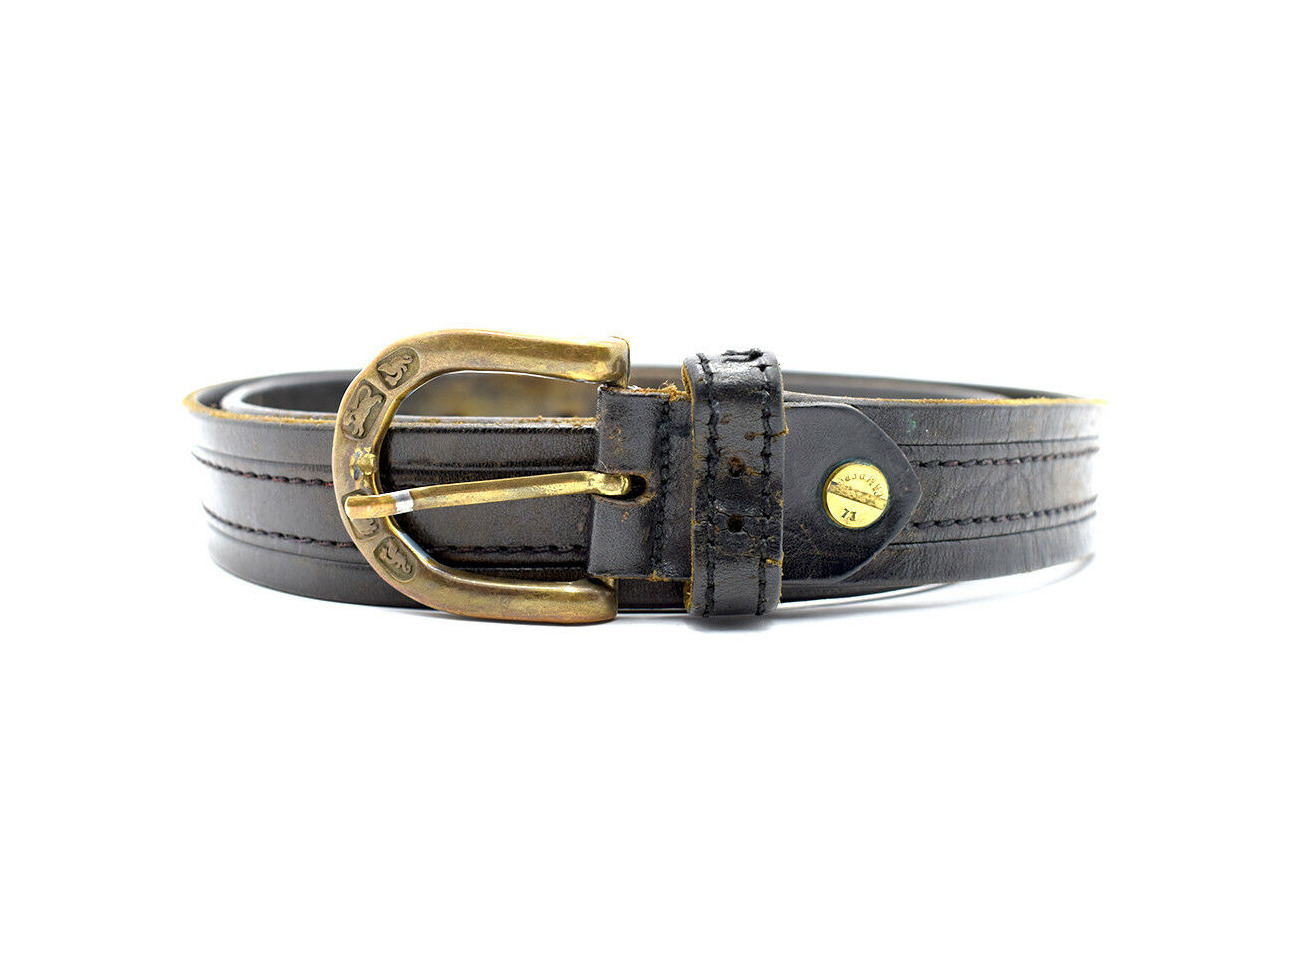 Rent El Campero Vintage Mens Leather Belt Black Brown Size 38 In London Rent For 0 00 Day